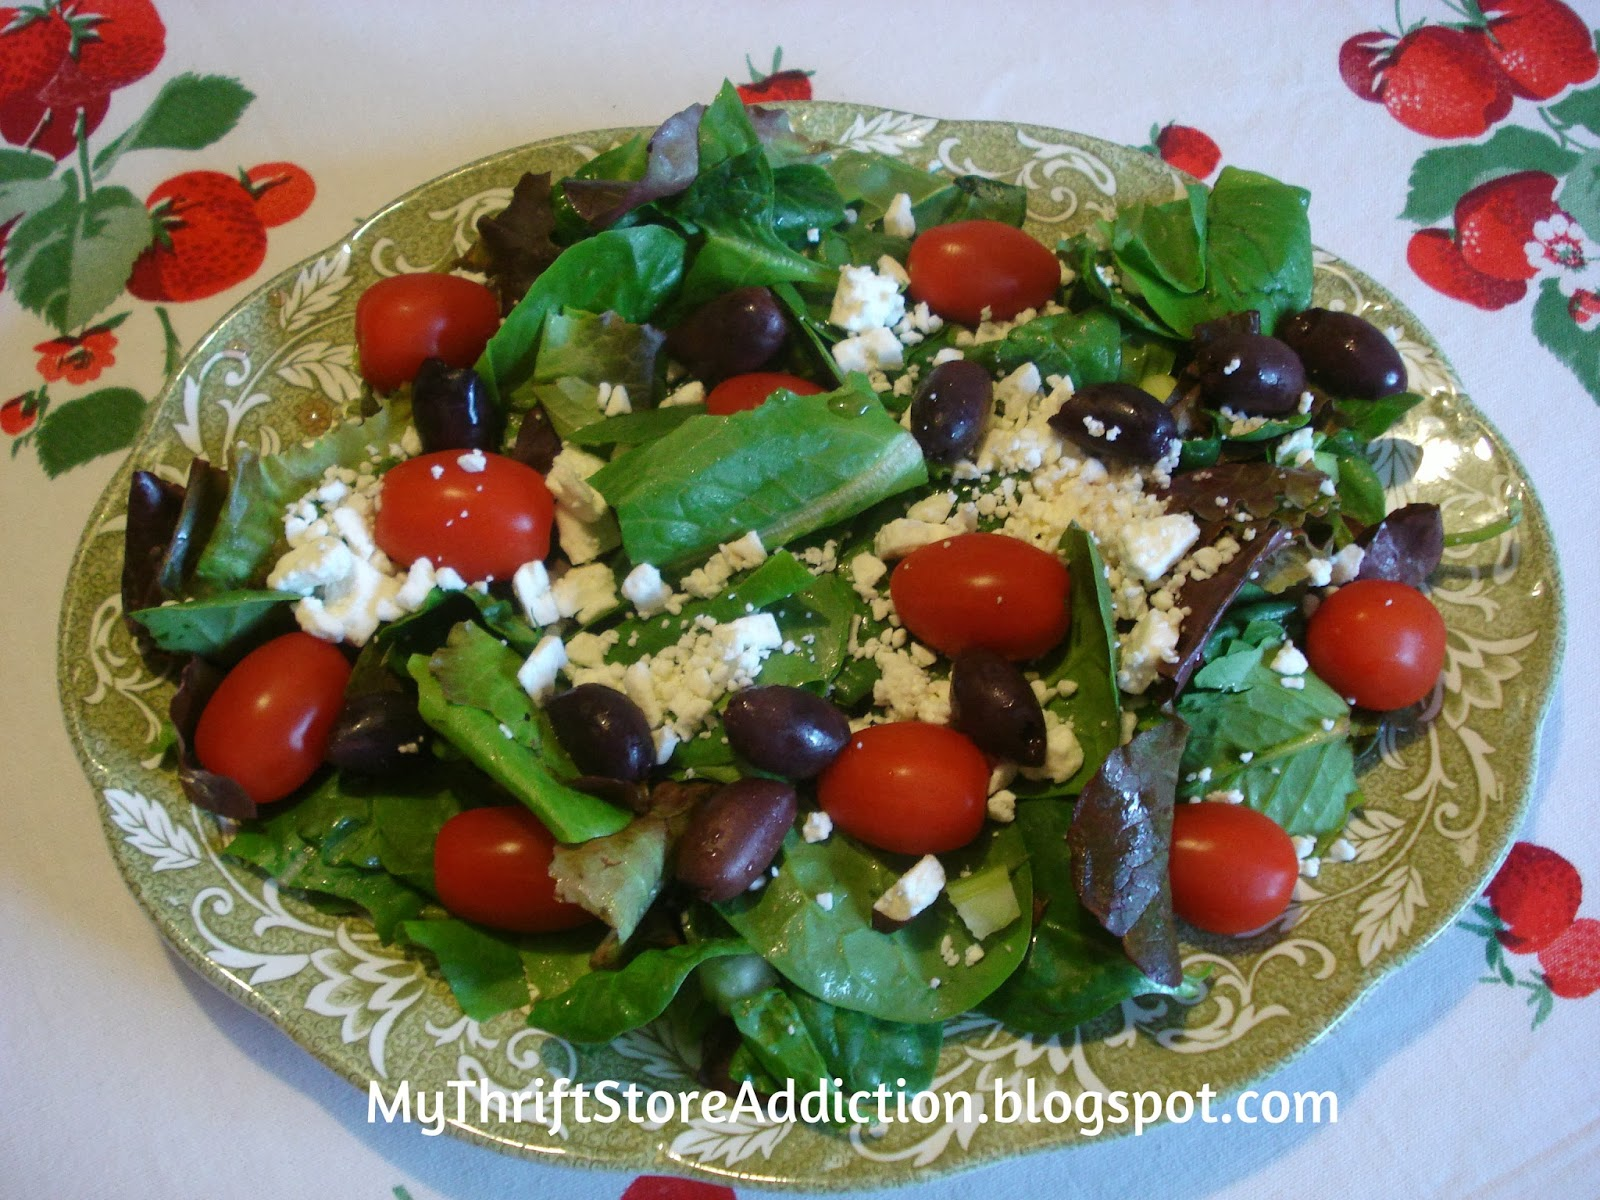 Secret Garden Herbs Greek salad